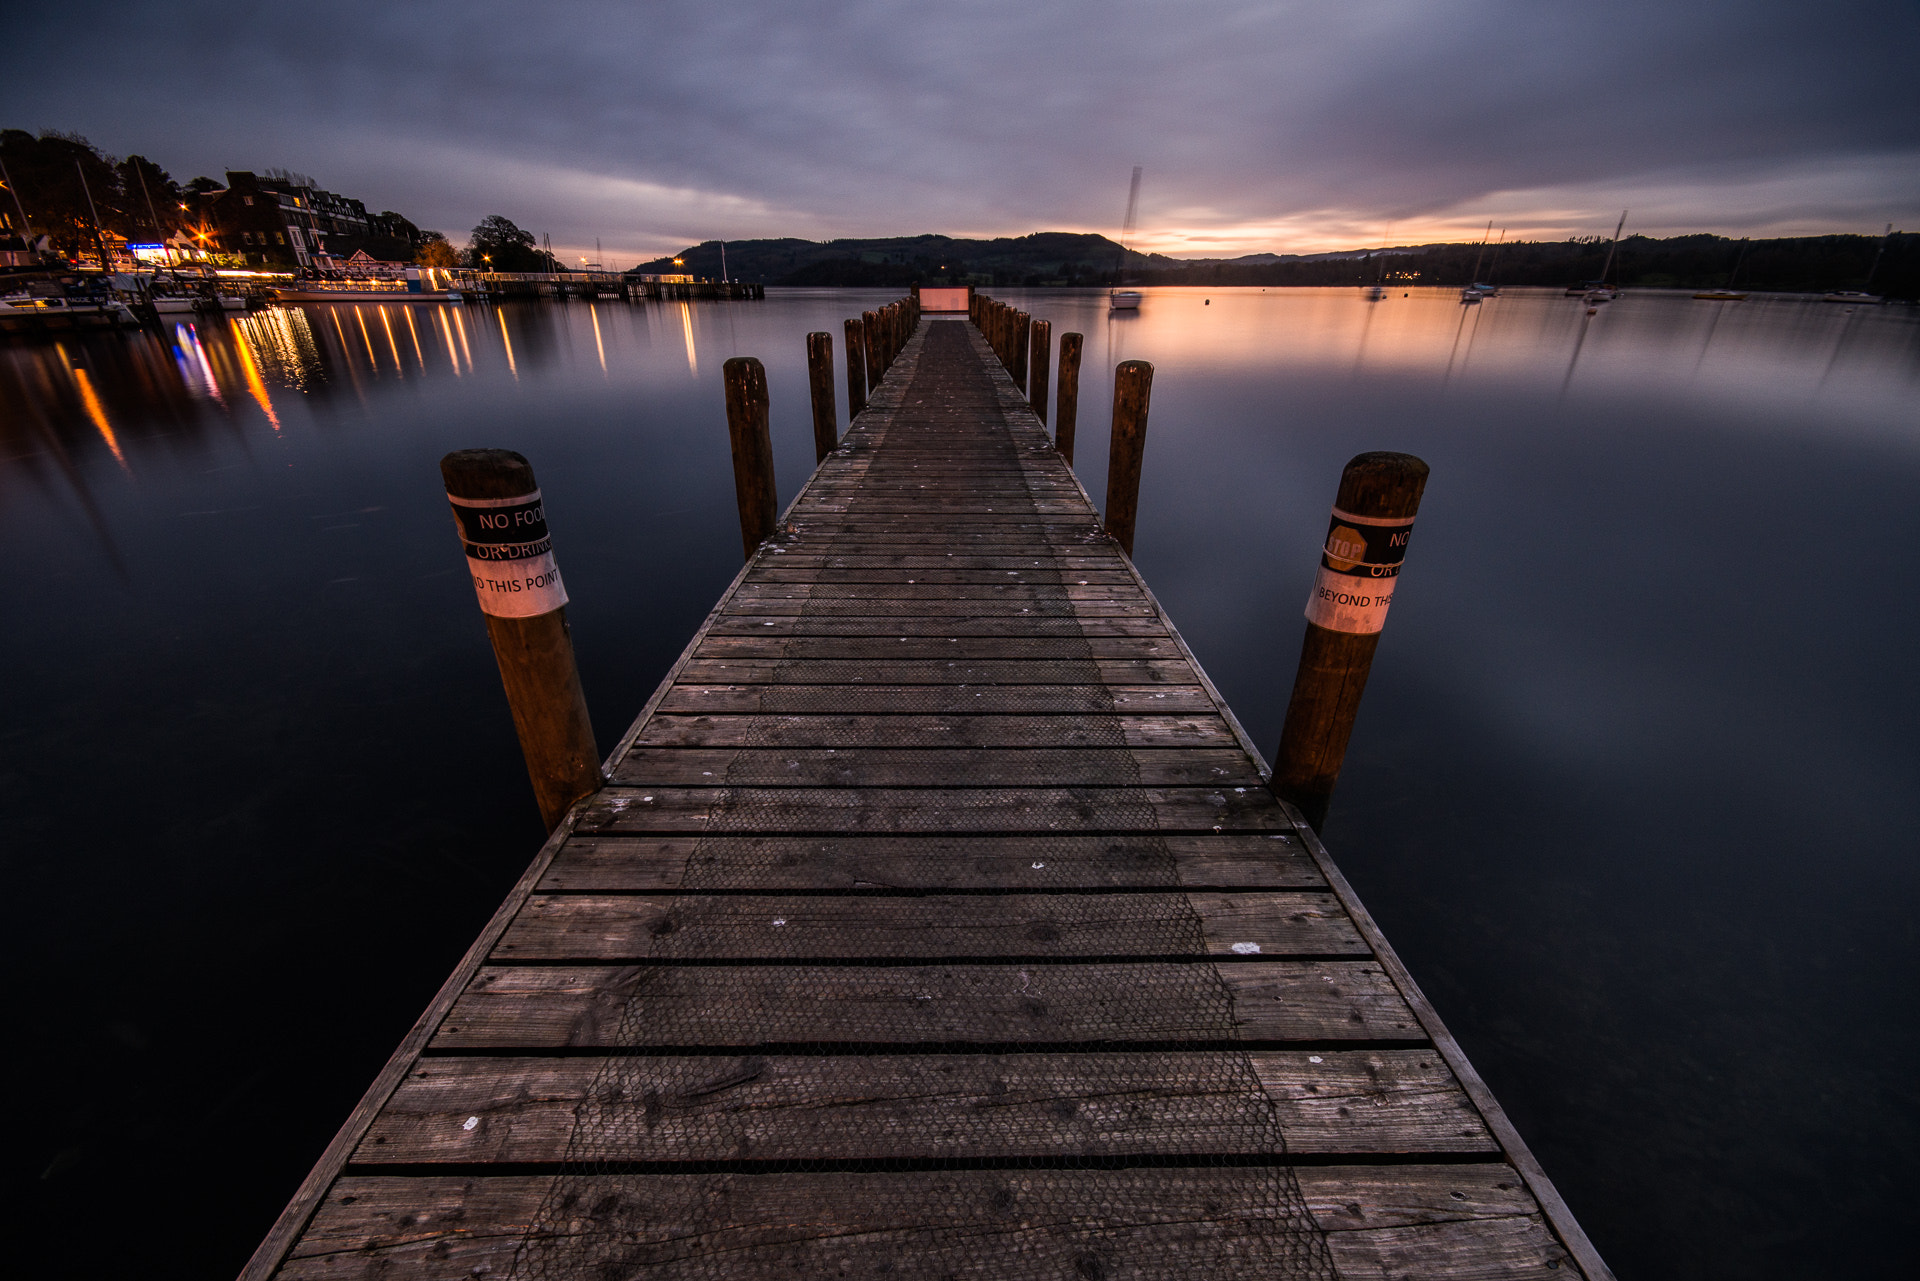 Photograph The Ambleside Jetty by Vaidas Mišeikis on 500px